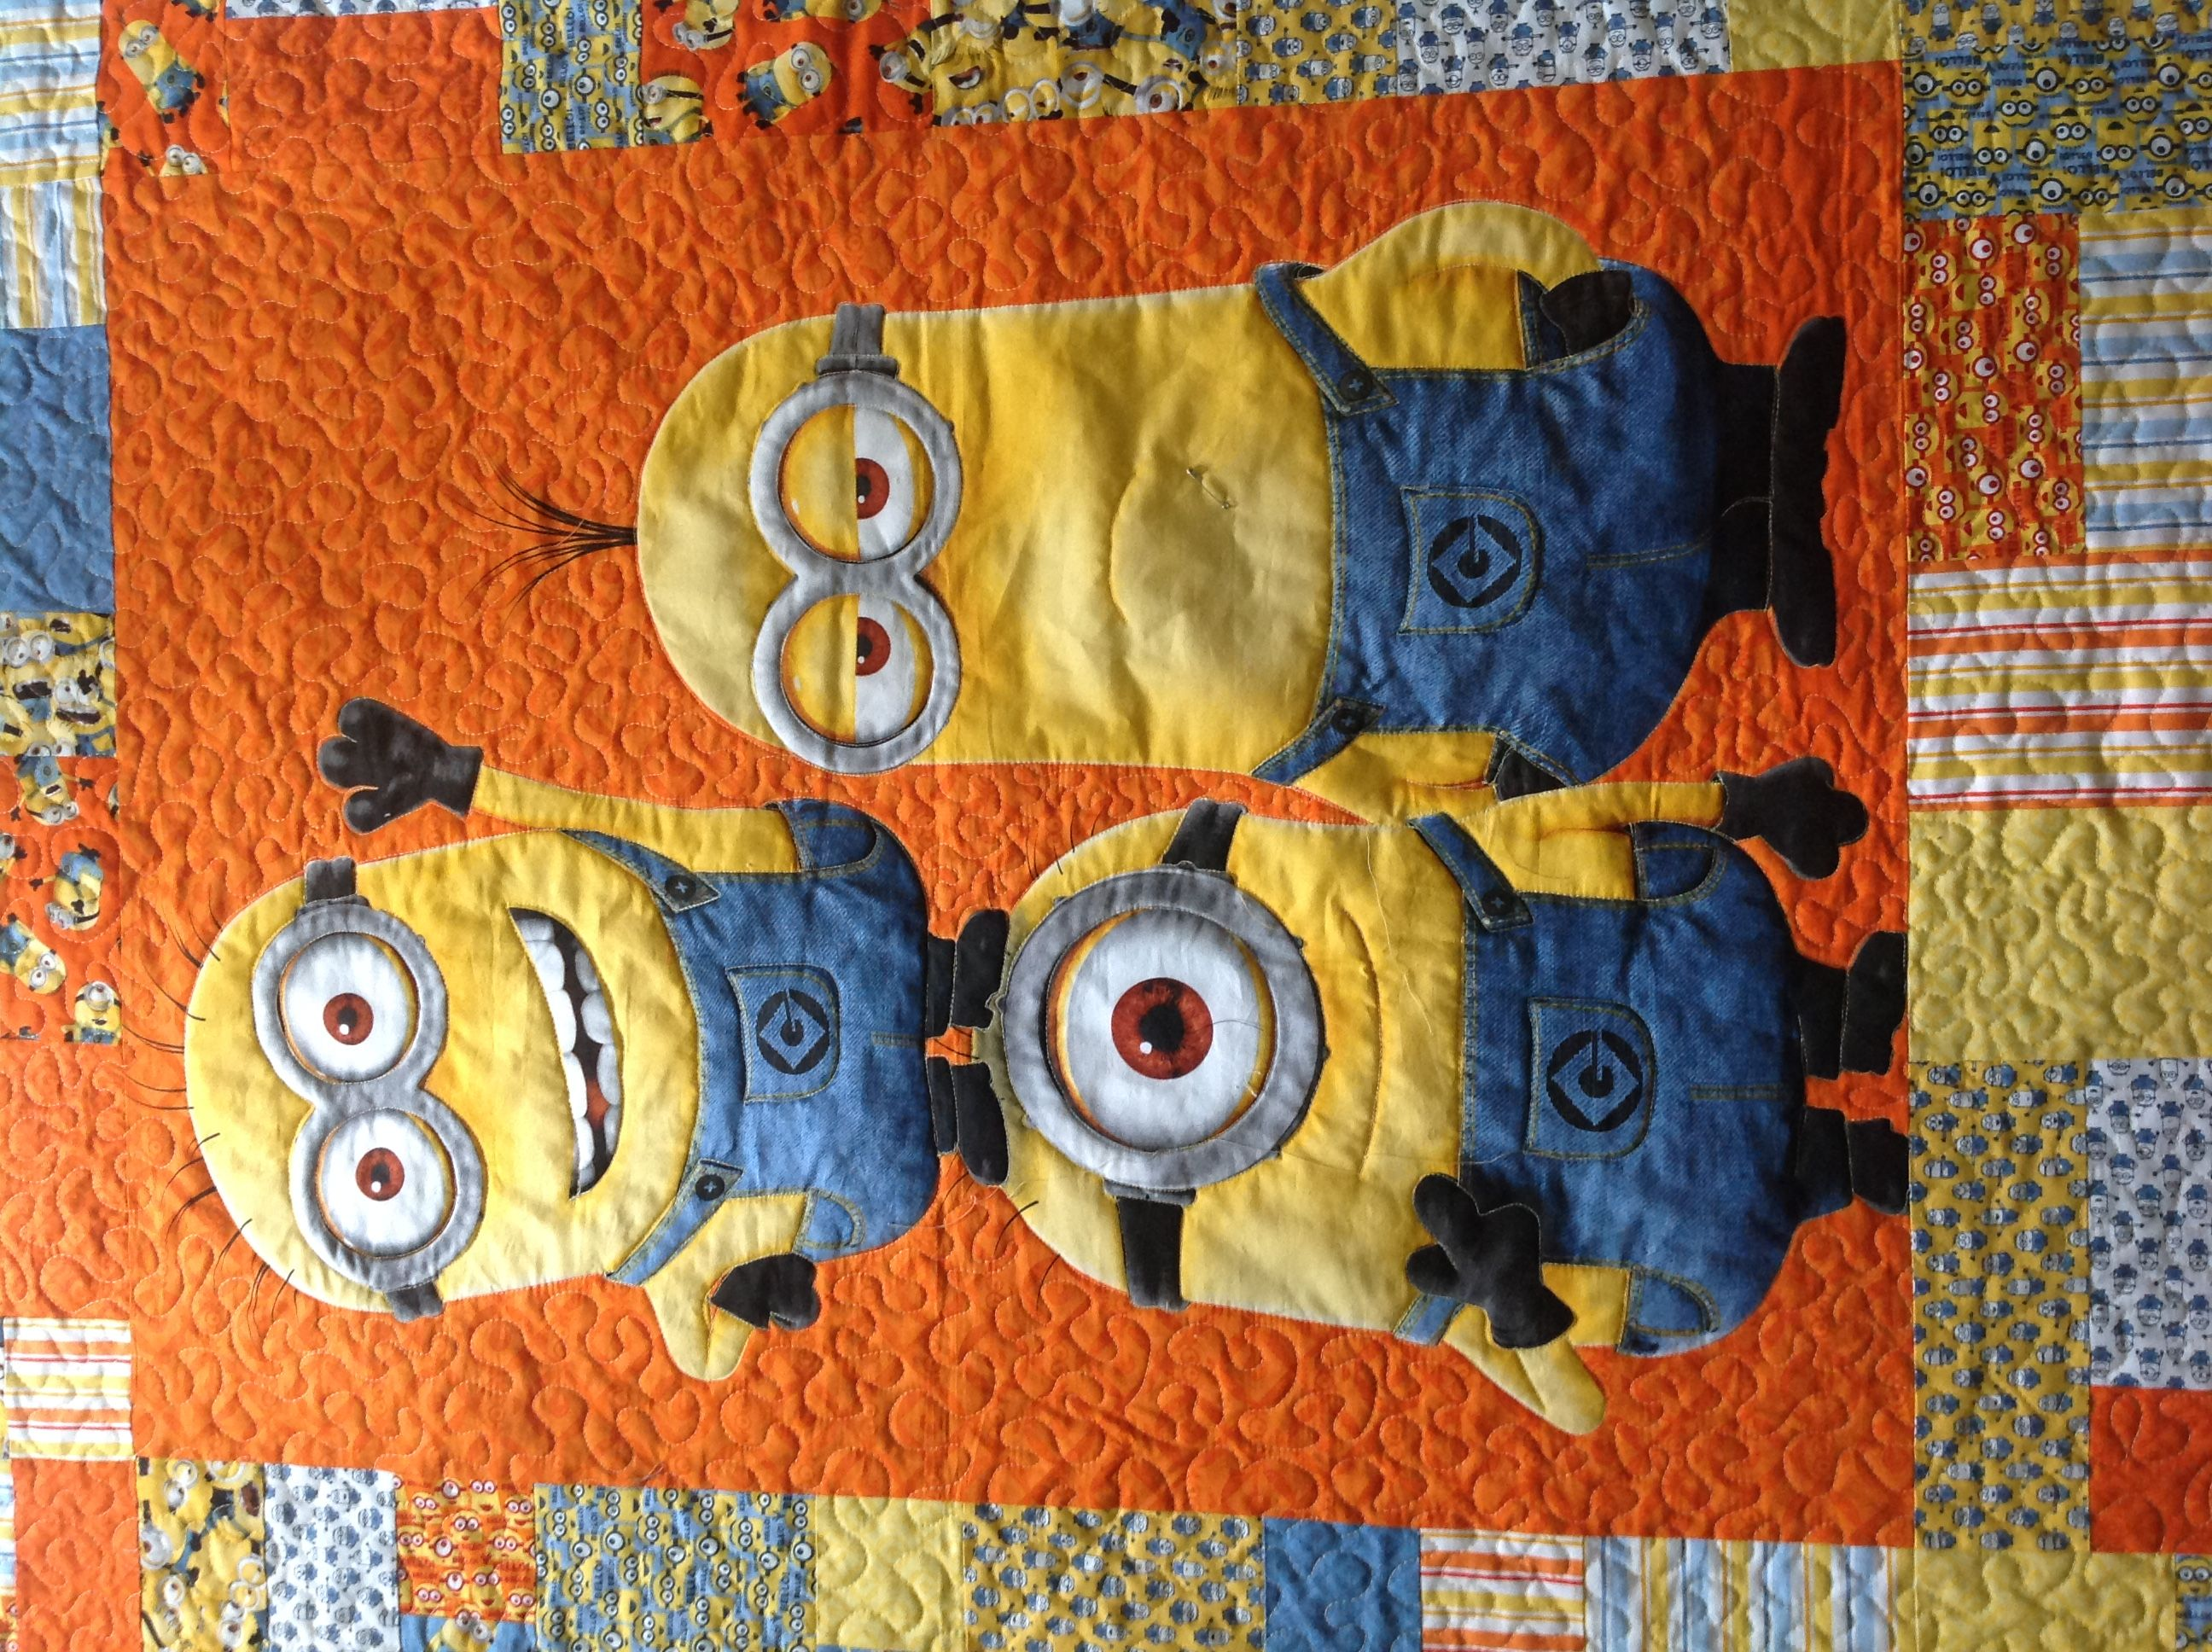 How to make a Minions quilt | quilts | Pinterest | Stitch ... : minion quilt - Adamdwight.com